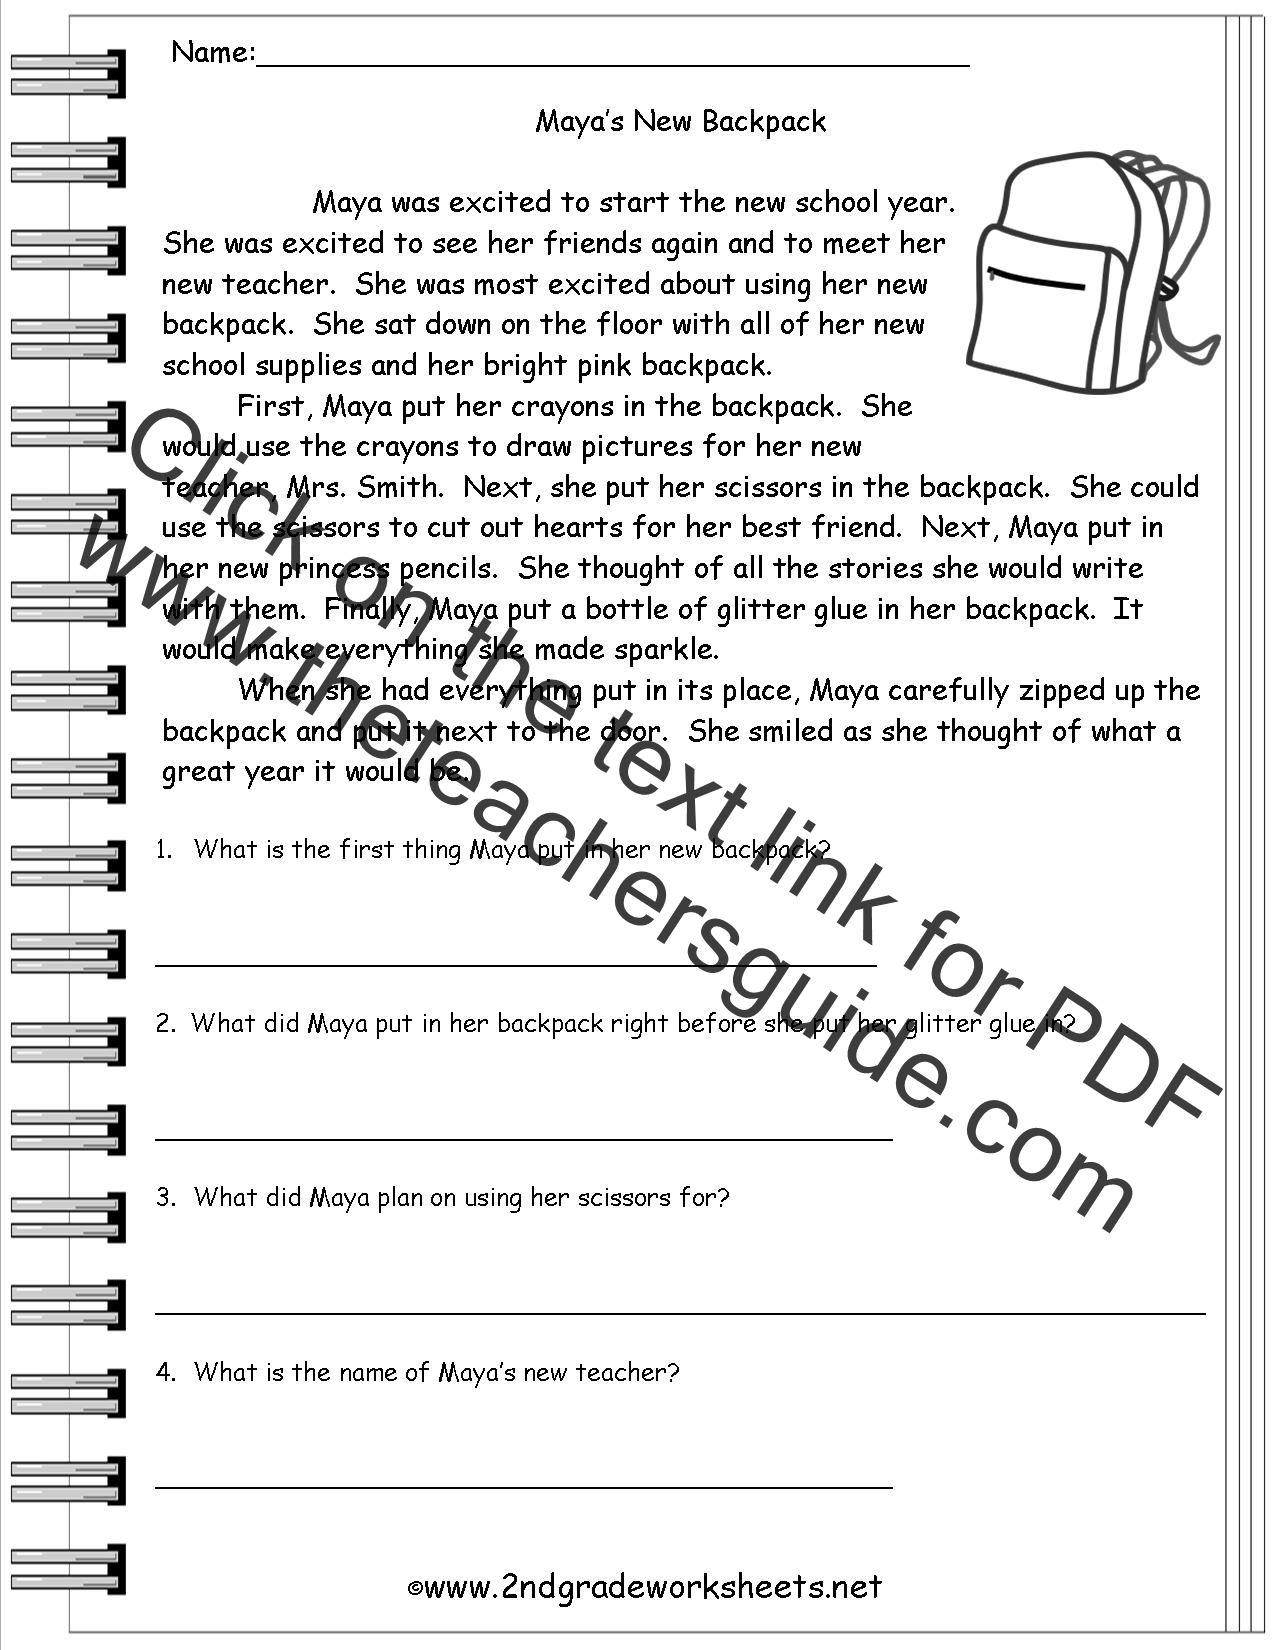 Worksheet Comprehension 2nd Grade reading worksheeets literature worksheets